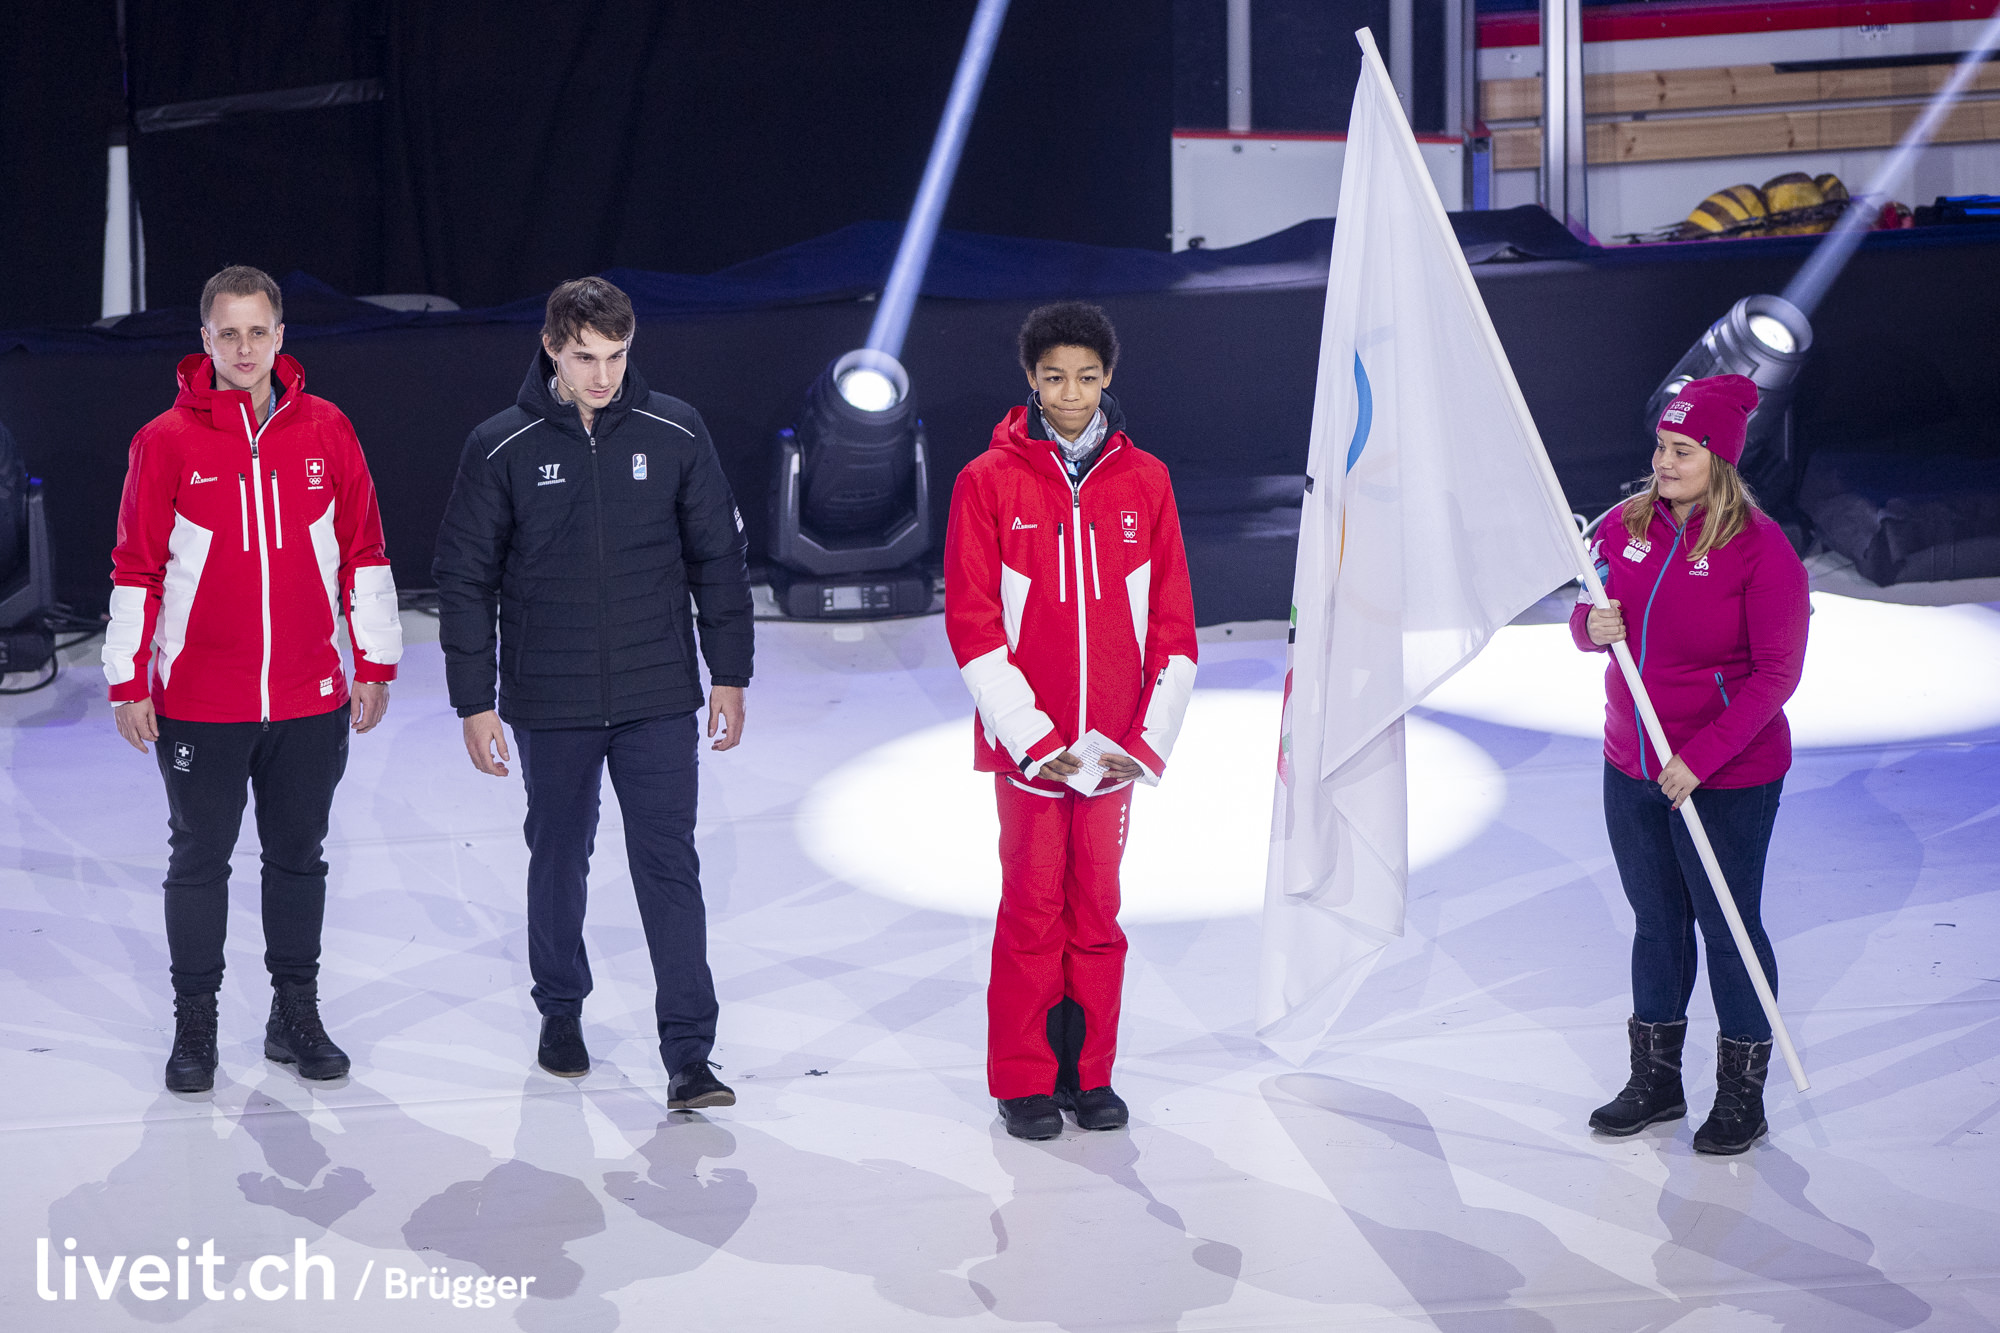 SWITZERLAND YOG LAUSANNE 2020 OPENING CEREMONY